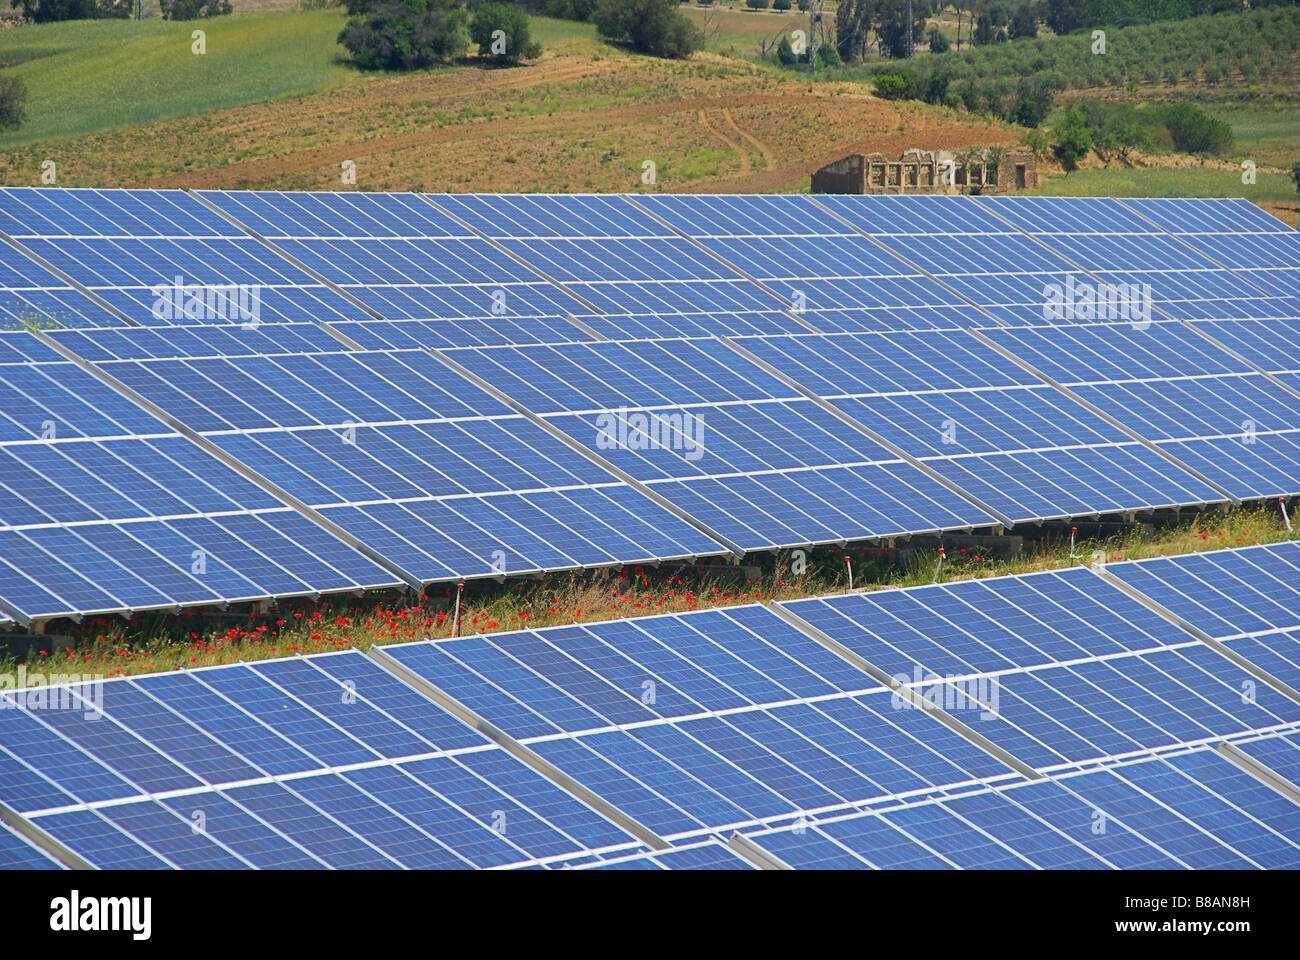 Solaranlage Solar Plant 39 Stock Photo 22363841 Alamy